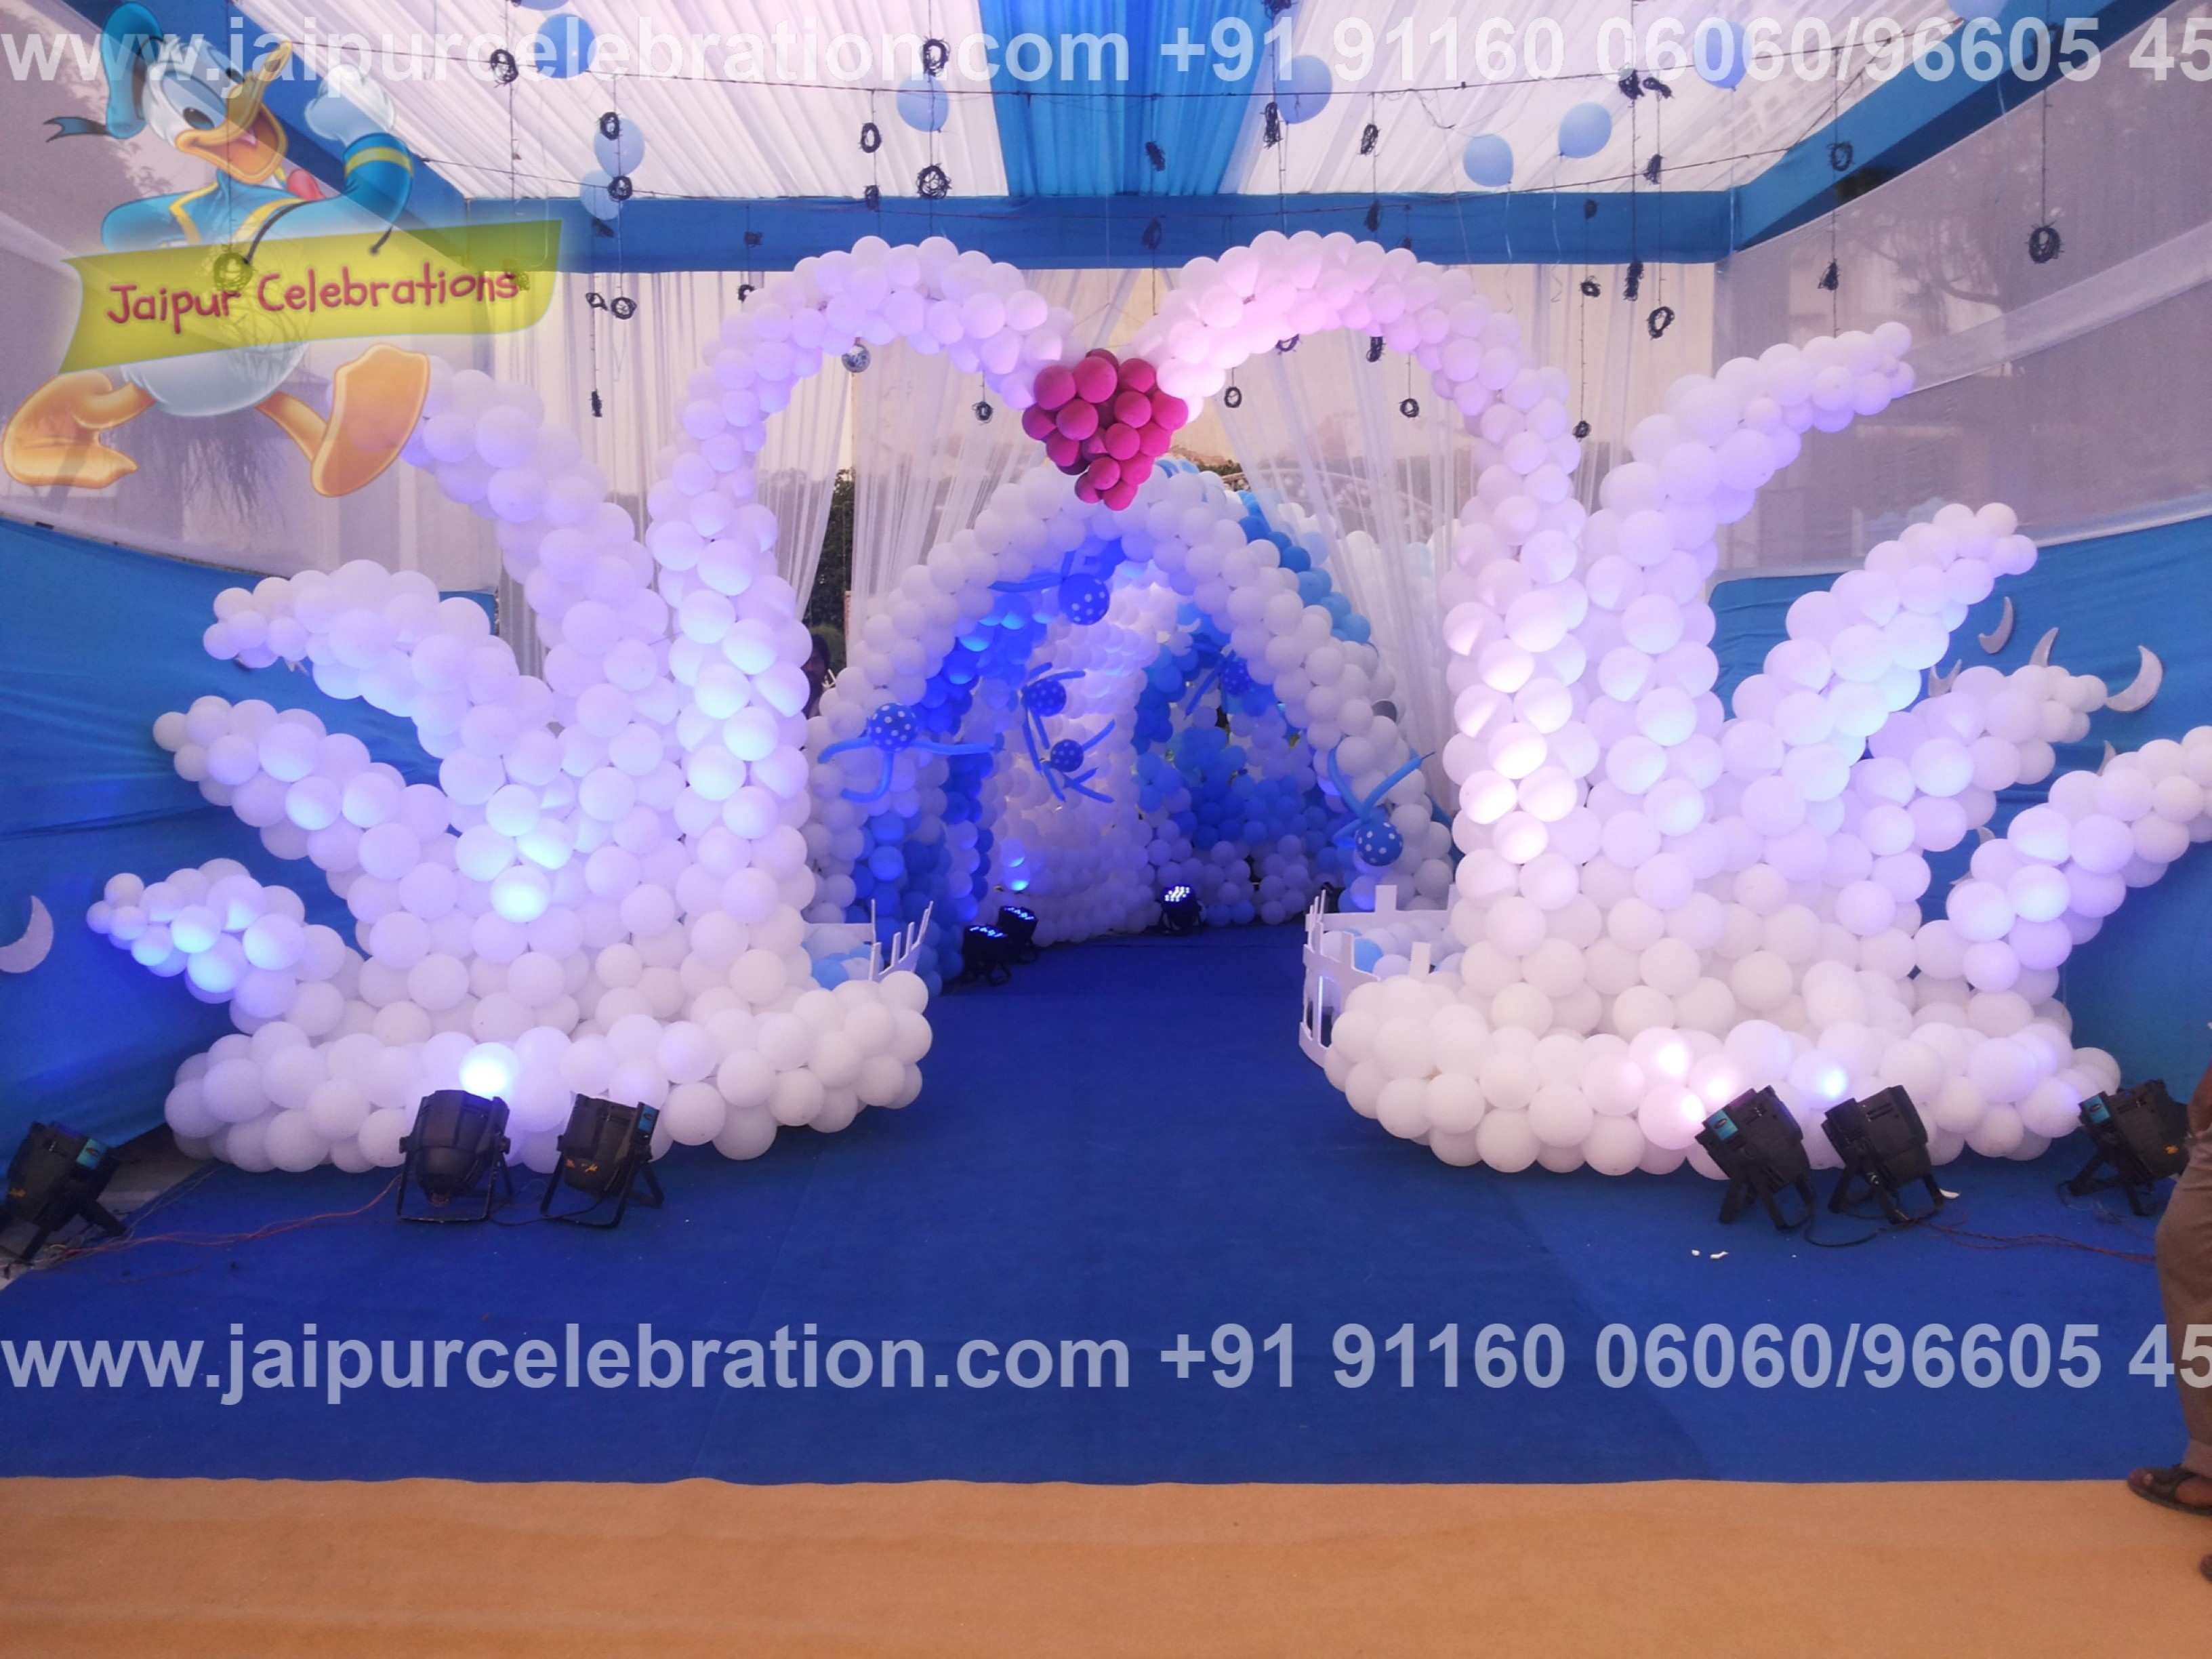 theme party organizer in jaipur